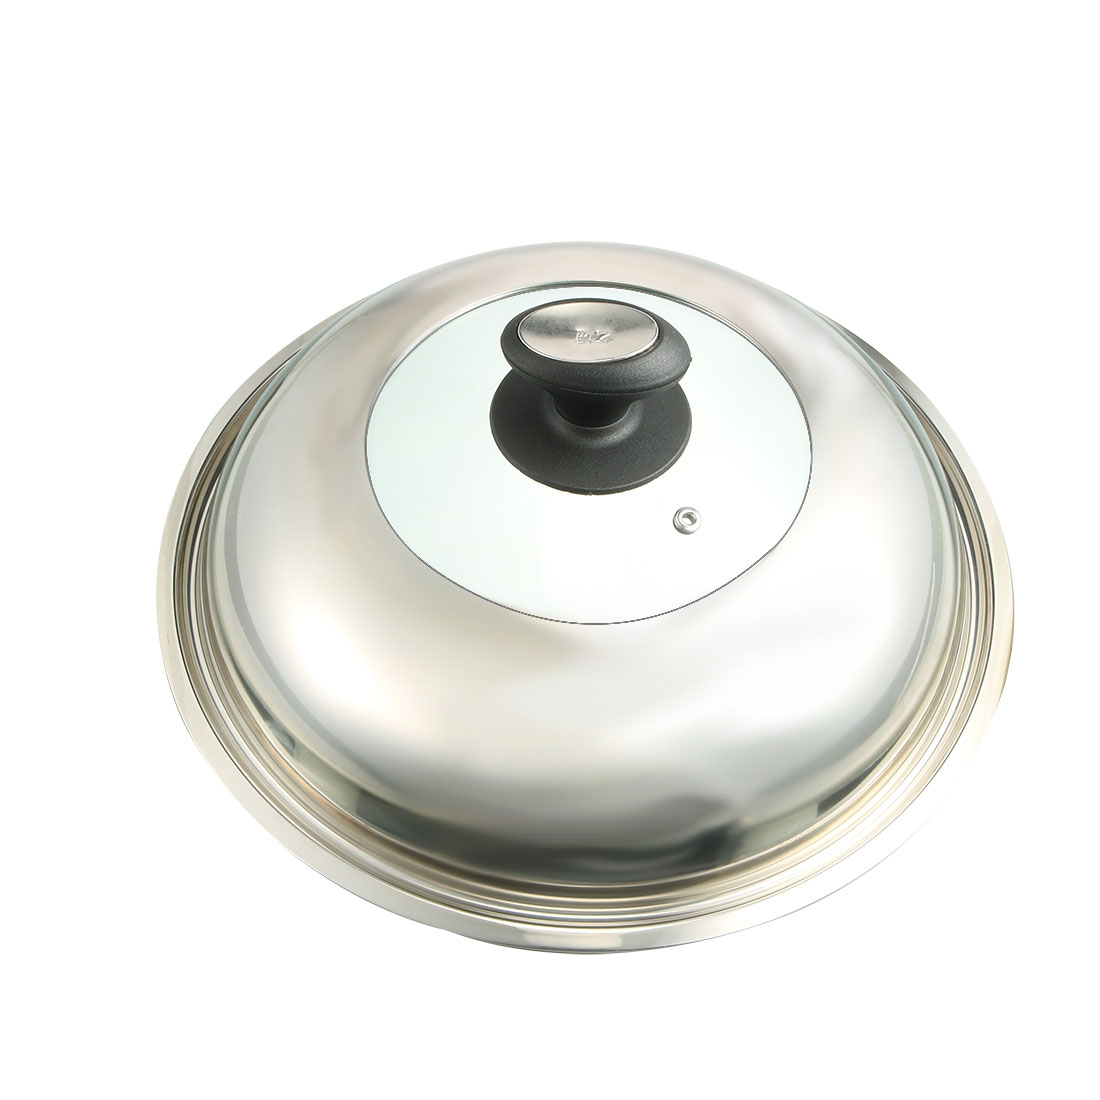 Kitchen Stainless Steel Cookware Cooker Pot Skillet Frying Pan Knob Lid Cover 33cm Dia